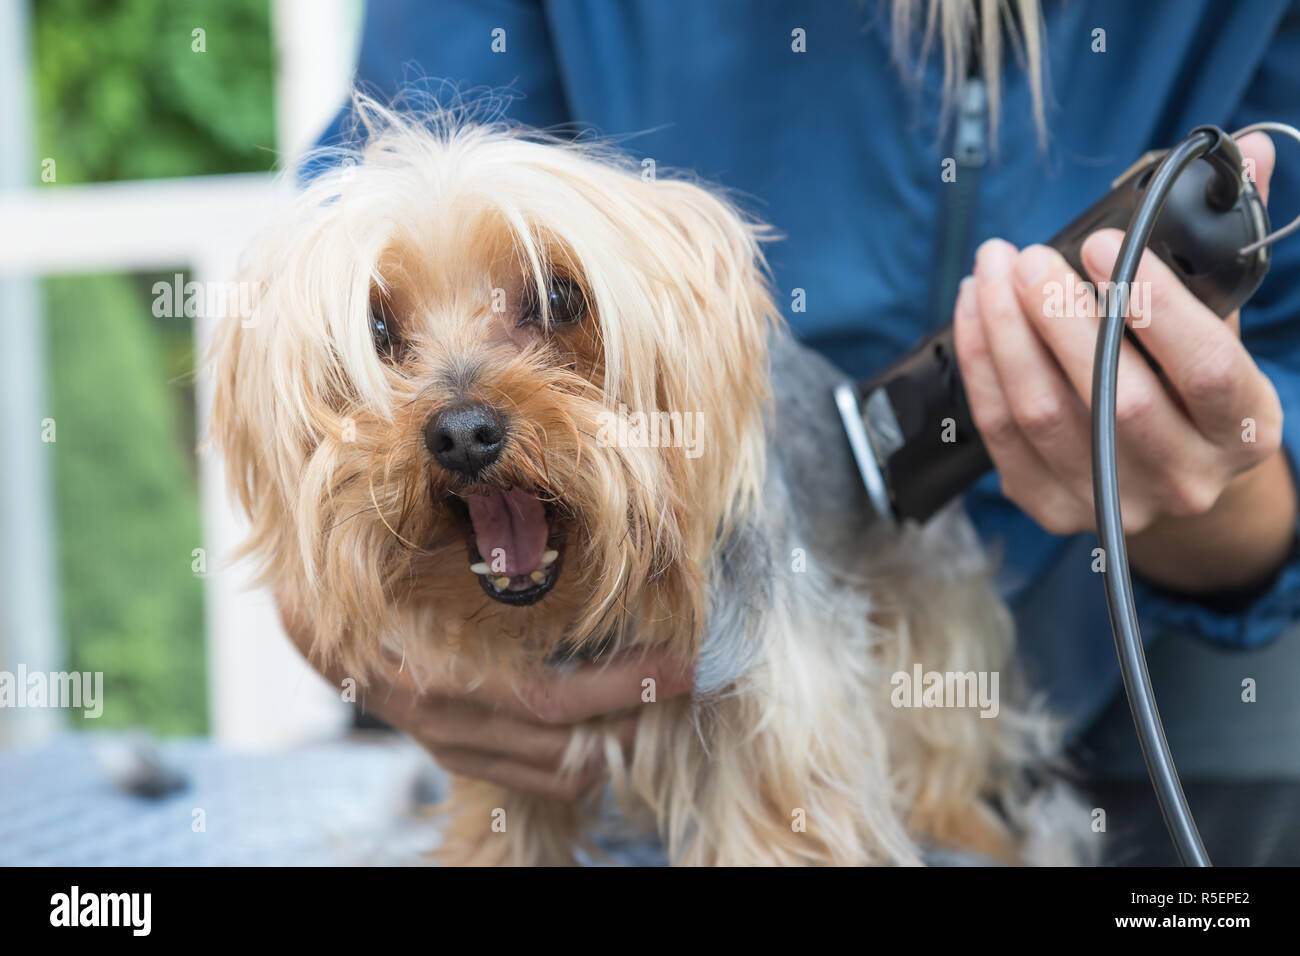 Grooming Yorkshire Terrier Dog Has Open Mouth Stock Photo